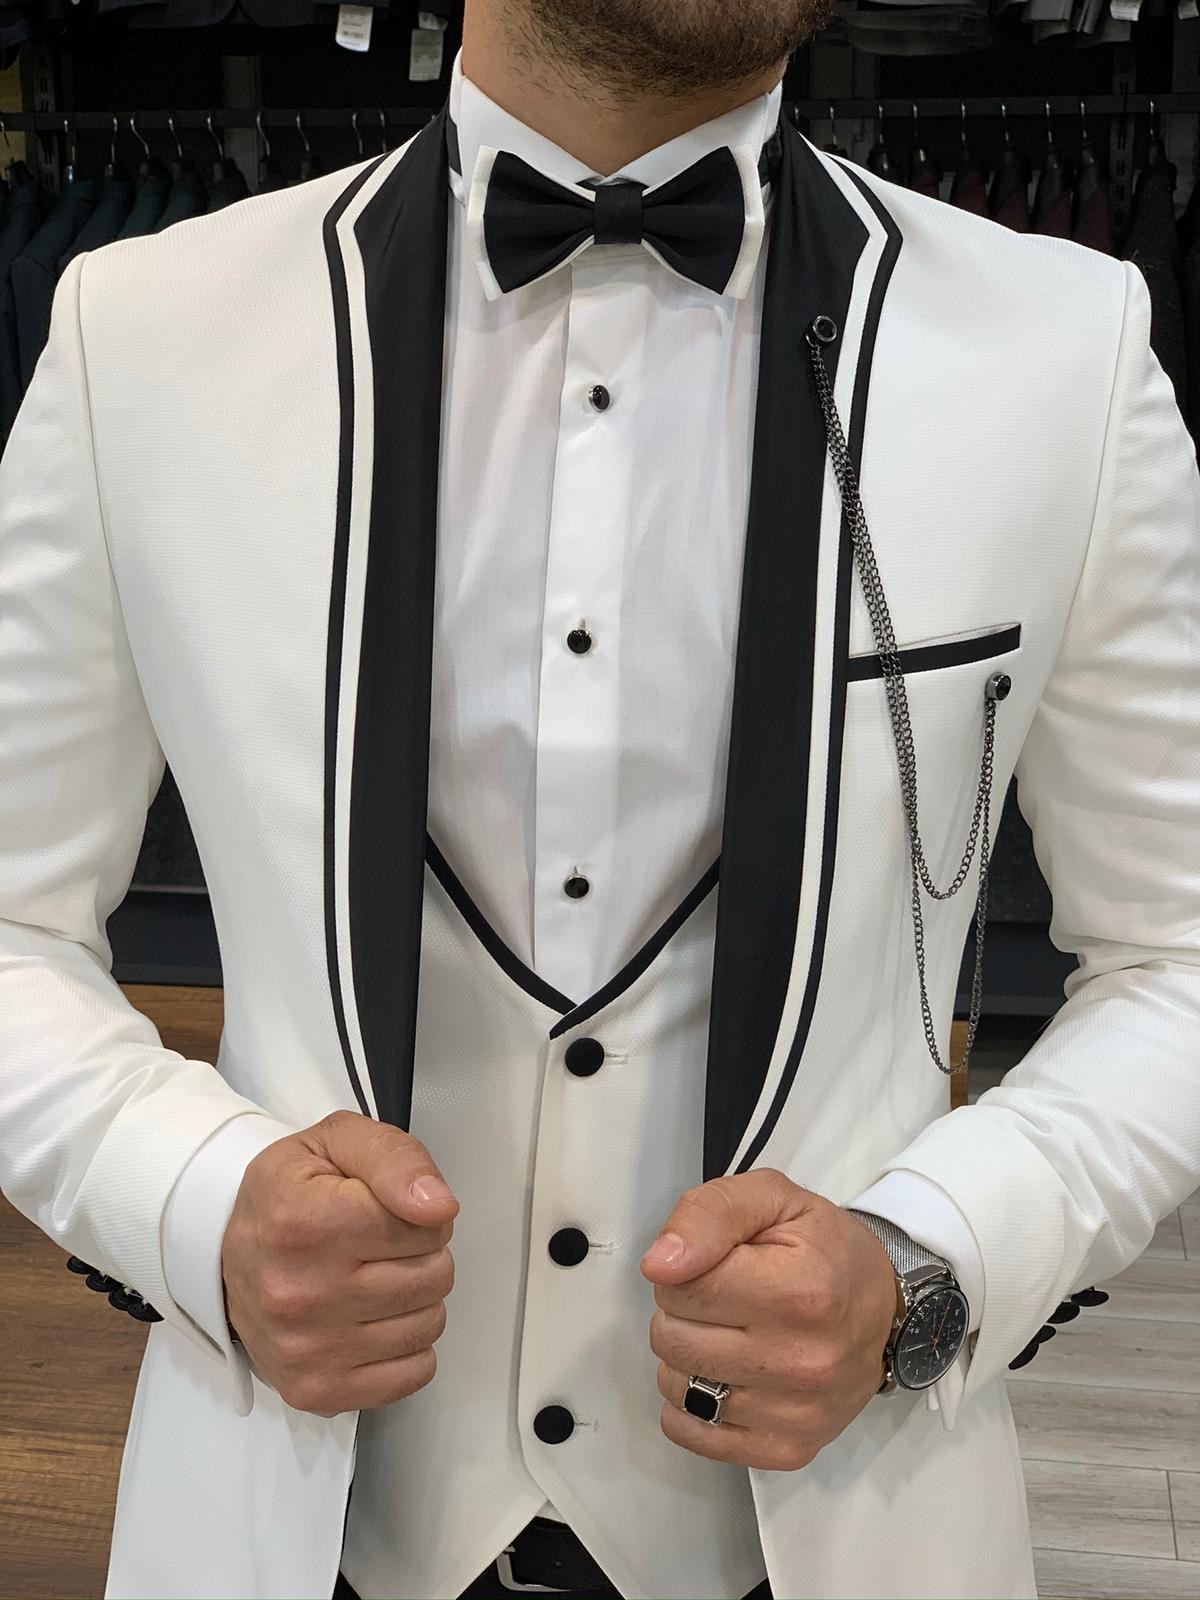 The Colors of Prom - Prom Tuxedo Color by BespokeDailyShop Blog